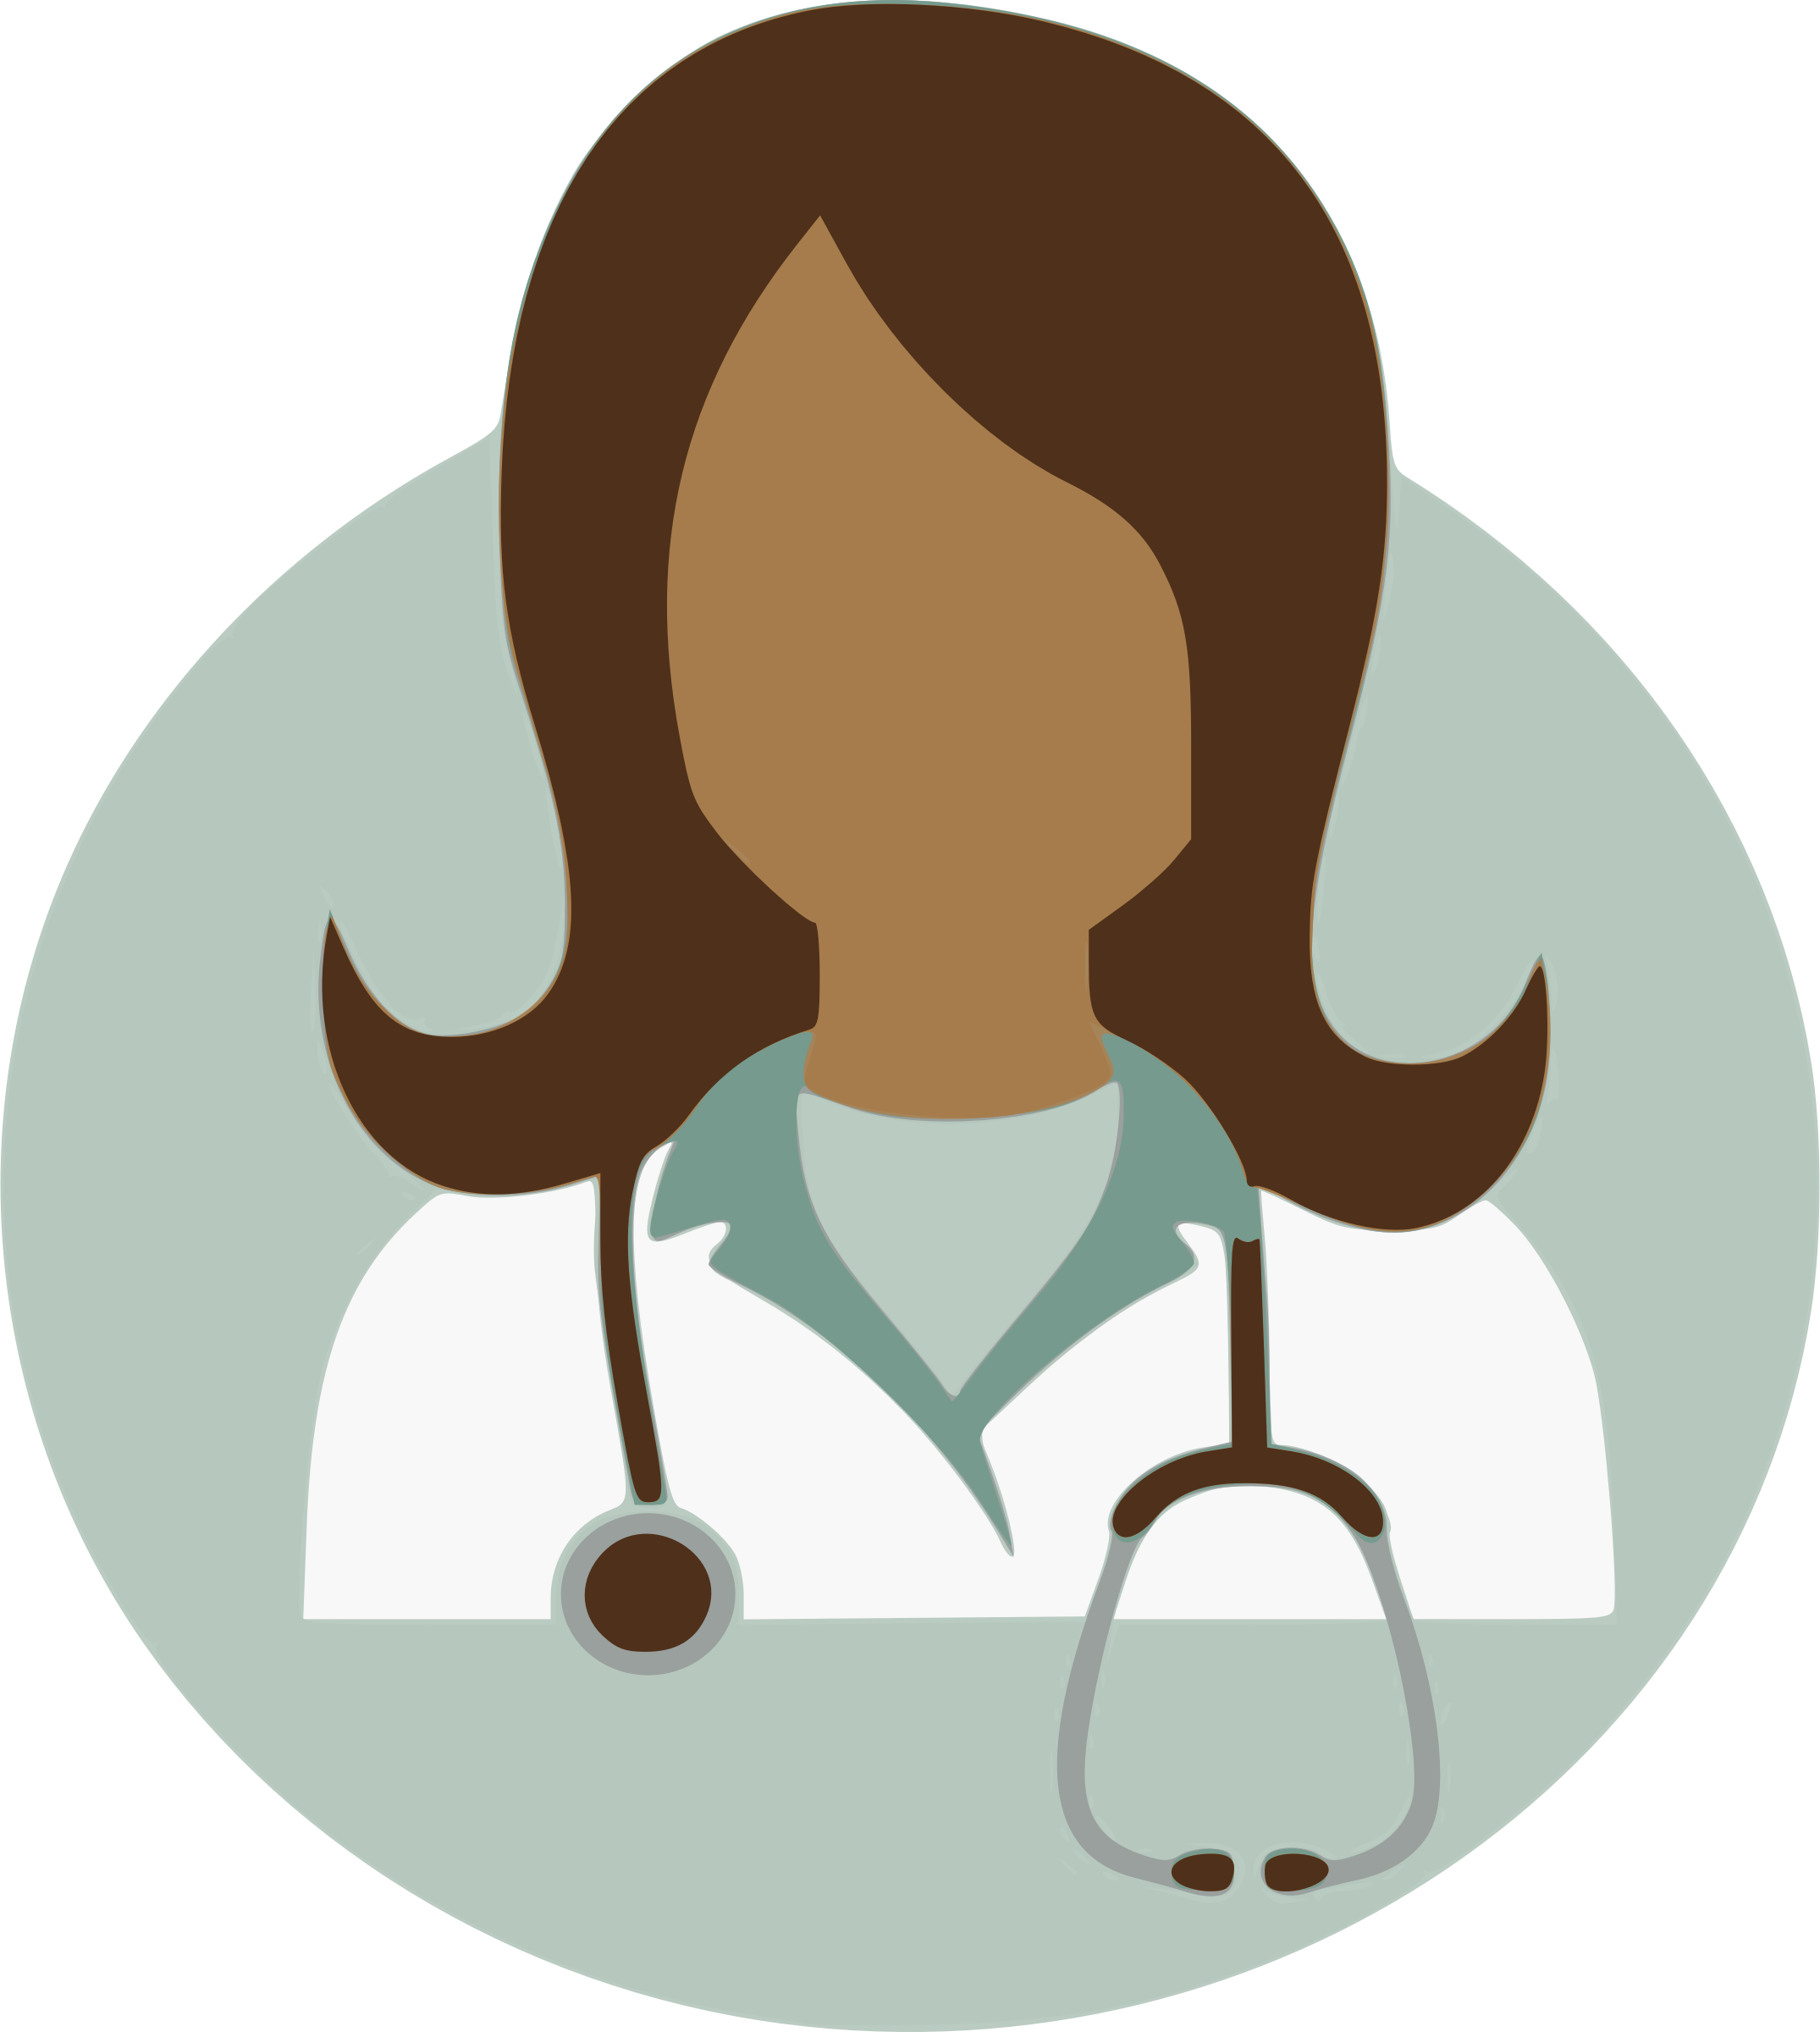 Lady clipart surgeon. Female doctor icons png